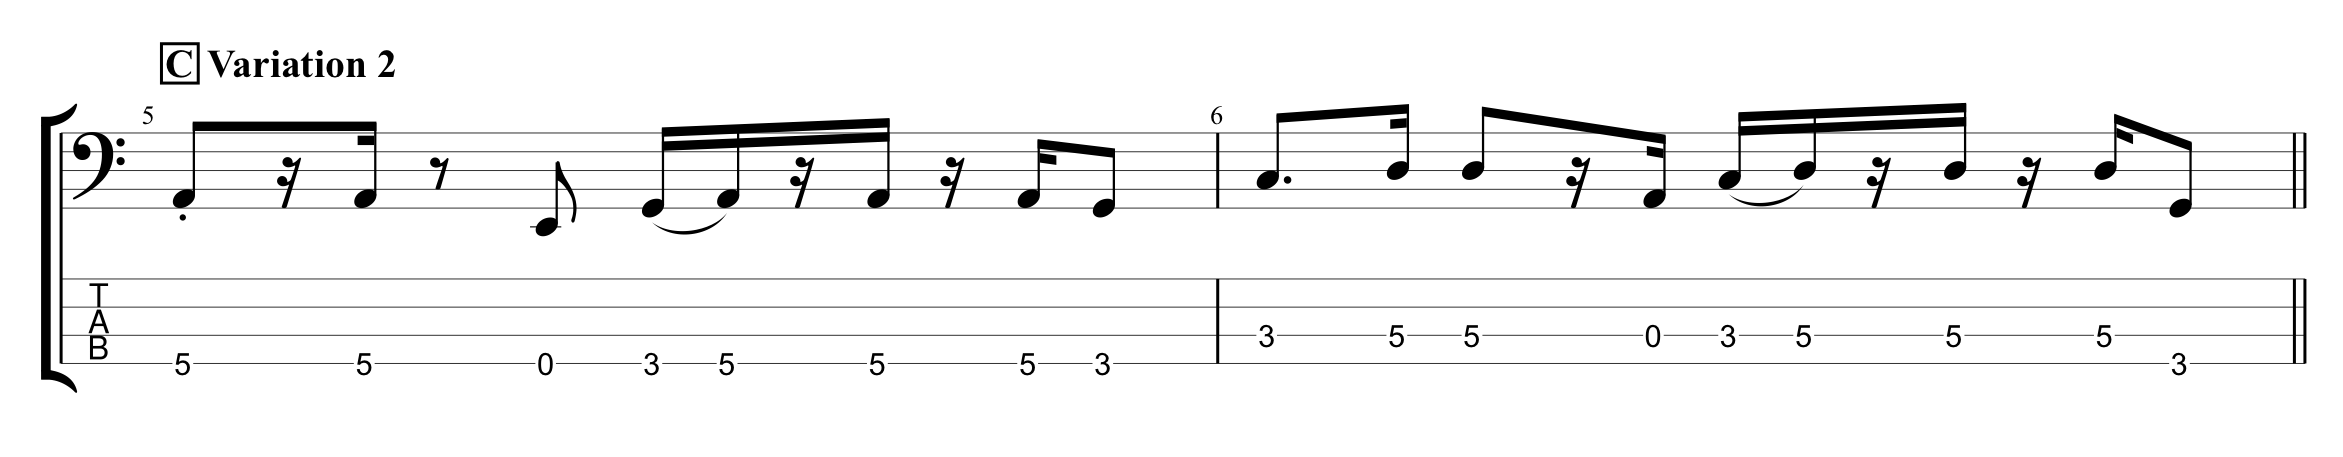 Rhythmic Variation Example 3